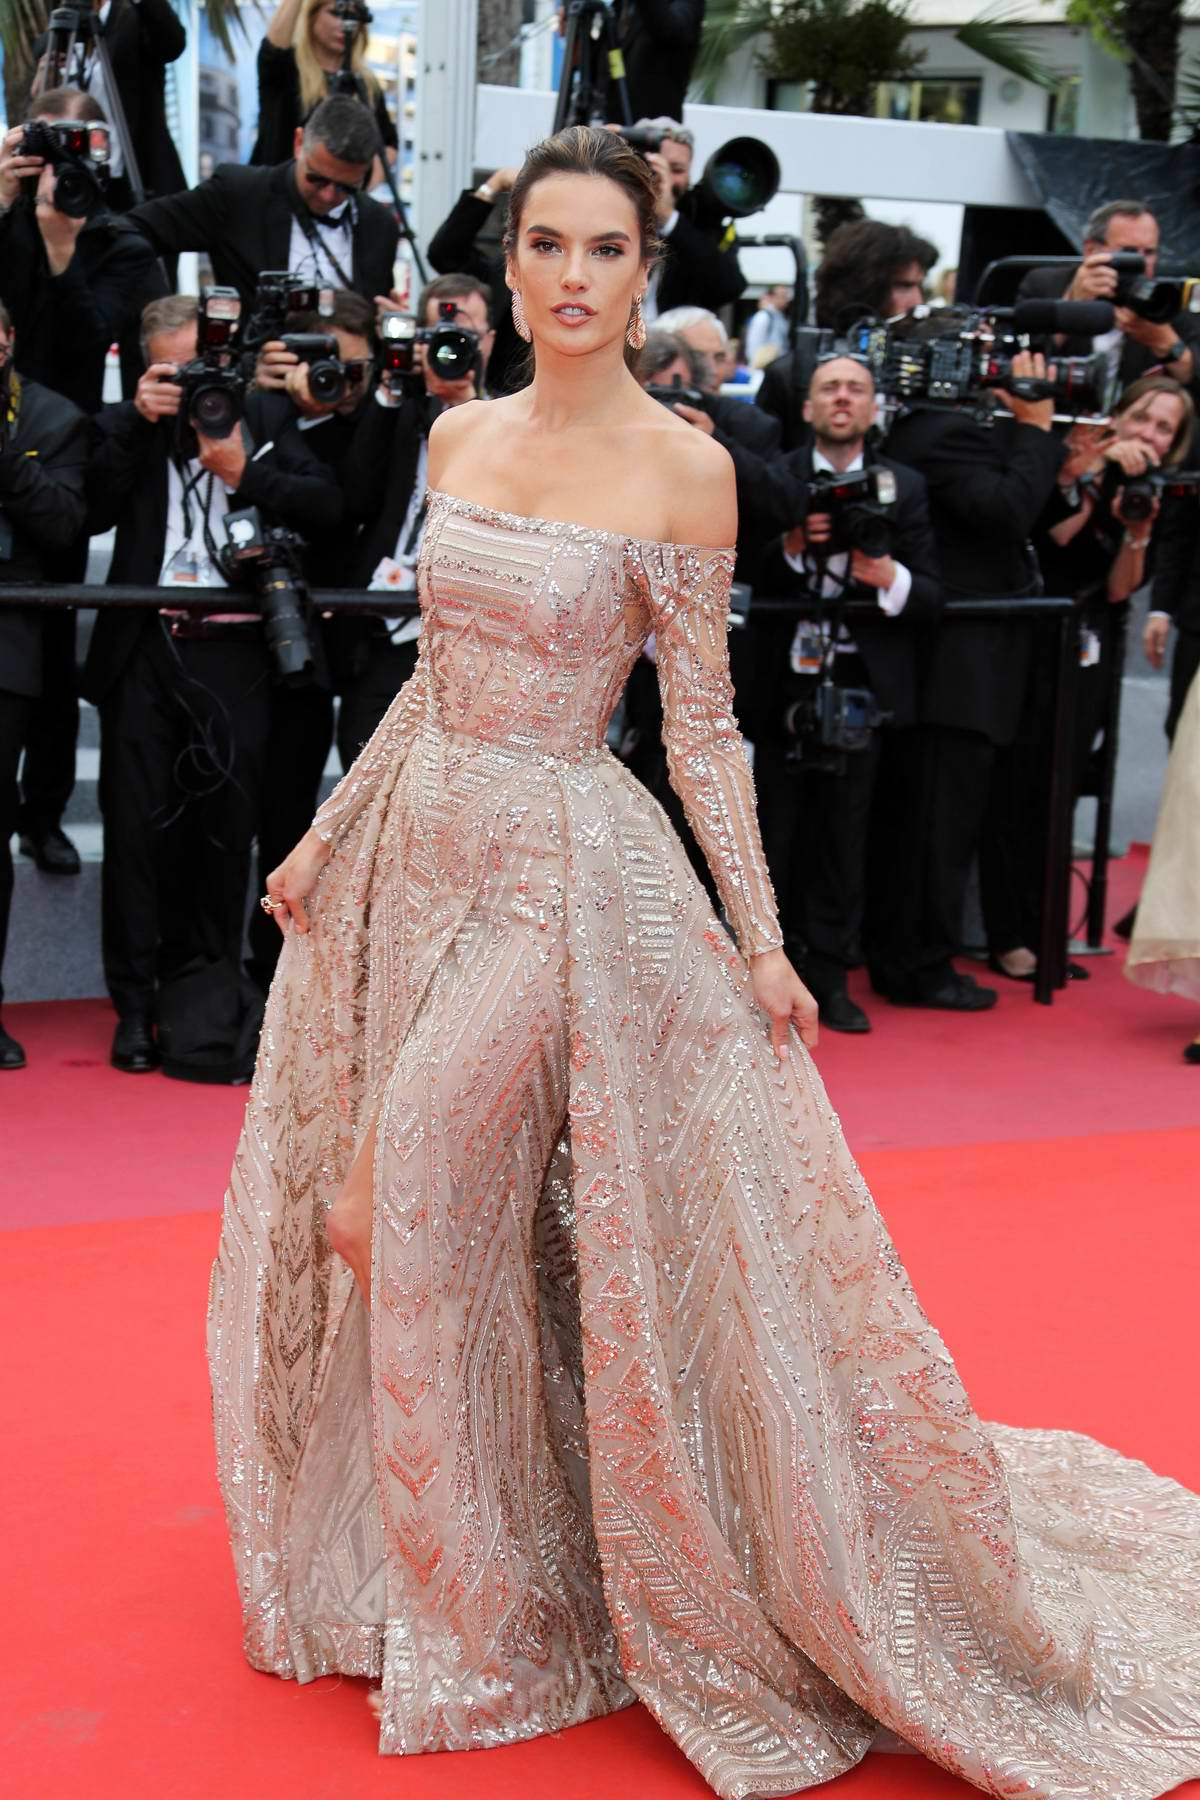 Alessandra Ambrosio attending 'The Wild Pear Tree' premiere during the 71st annual Cannes Film Festival in Cannes, France